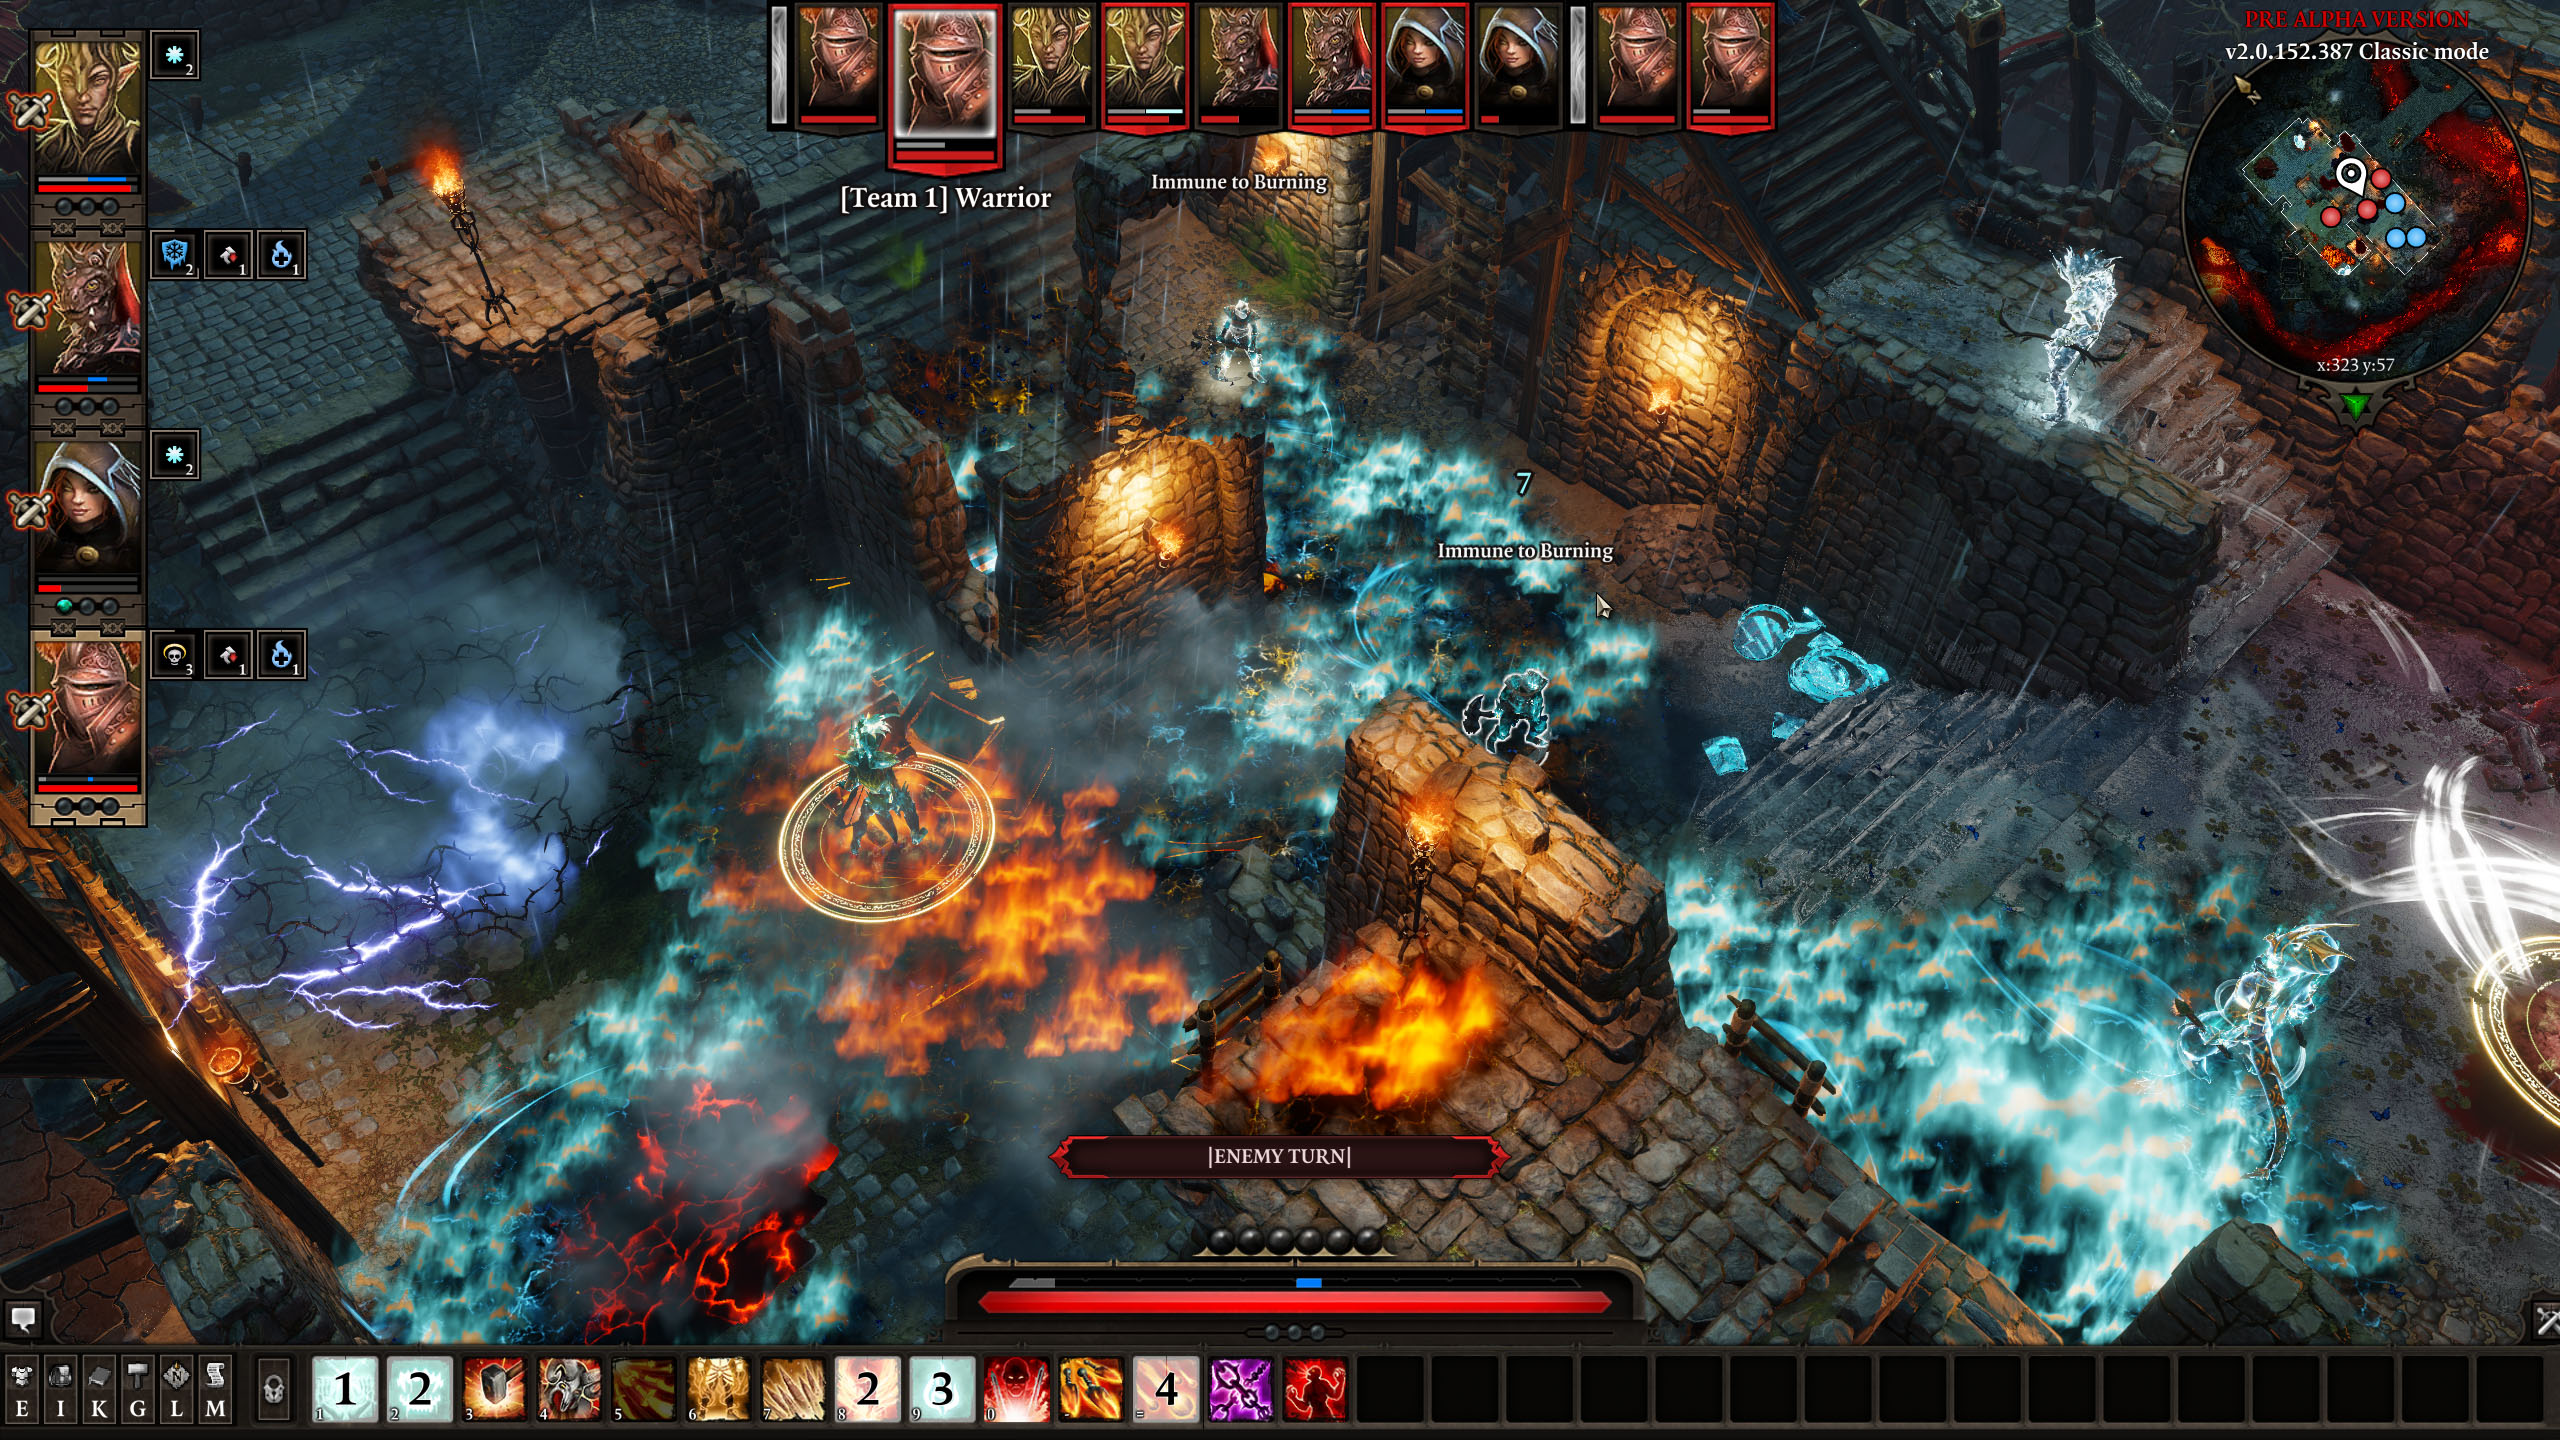 divinity: original sin II pc